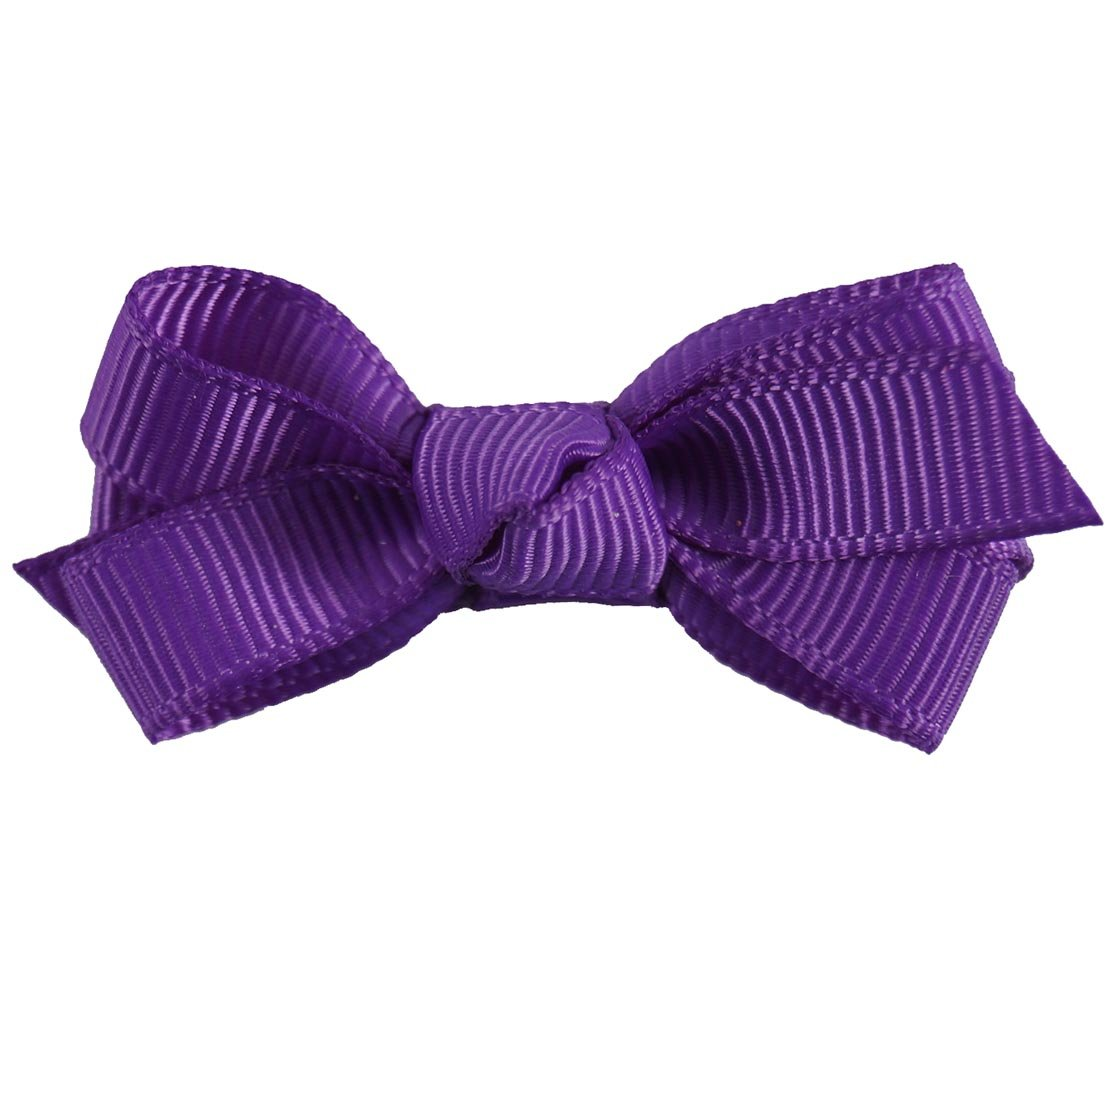 CN Boutique Baby Girls Hair Bows Alligator Clips Grosgrain Ribbon Barrettes For Teens Kids Toddlers 15 Colors 30pcs by C.N. (Image #6)